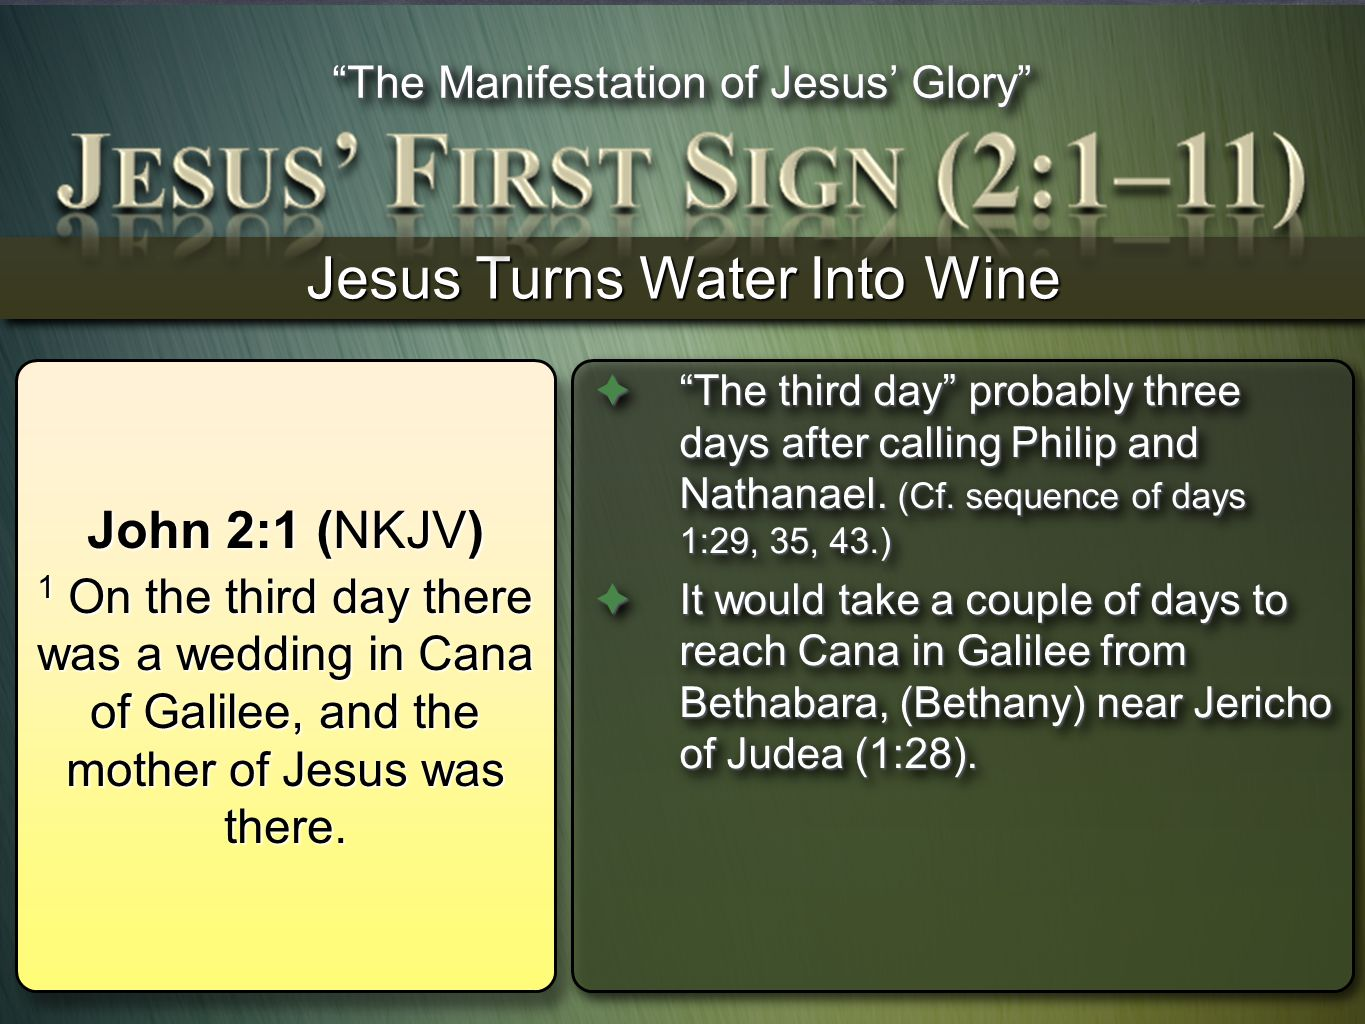 Jesus Turns Water Into Wine The third day probably three days after calling Philip and Nathanael. (Cf. sequence of days 1:29, 35, 43.)The third day pr